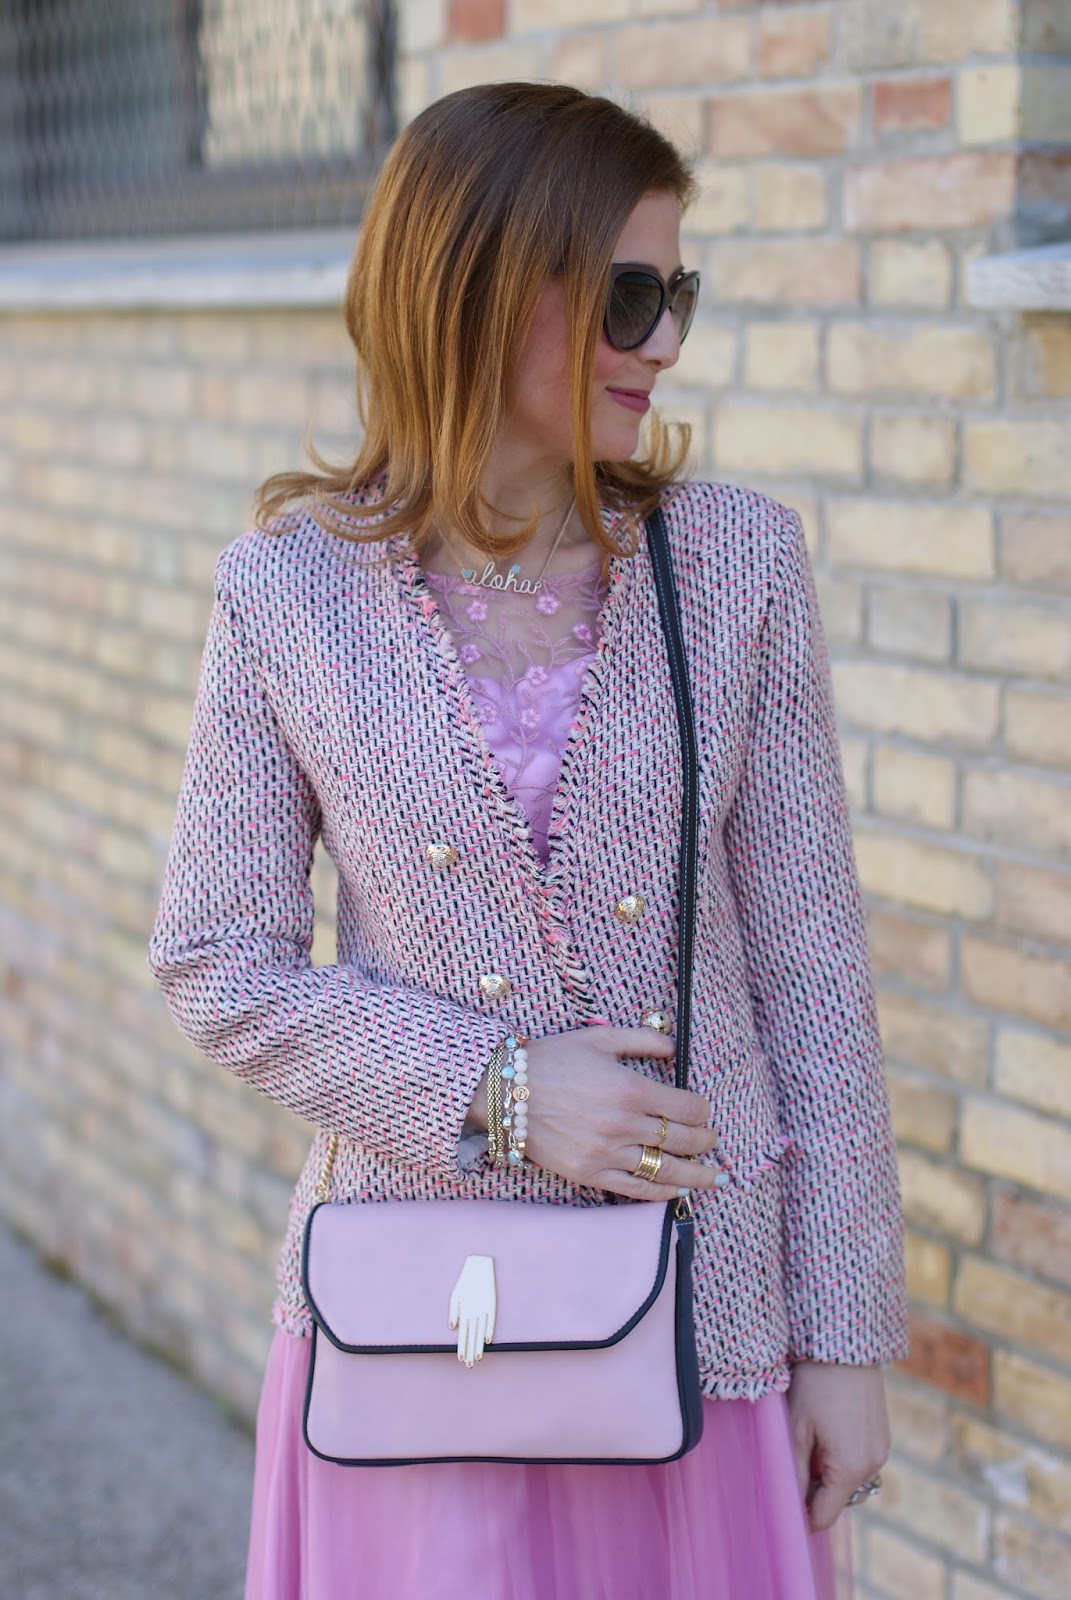 Chanel inspired jacket and Pink midi tulle dress for a romantic outfit on Fashion and Cookies fashion blog, fashion blogger style